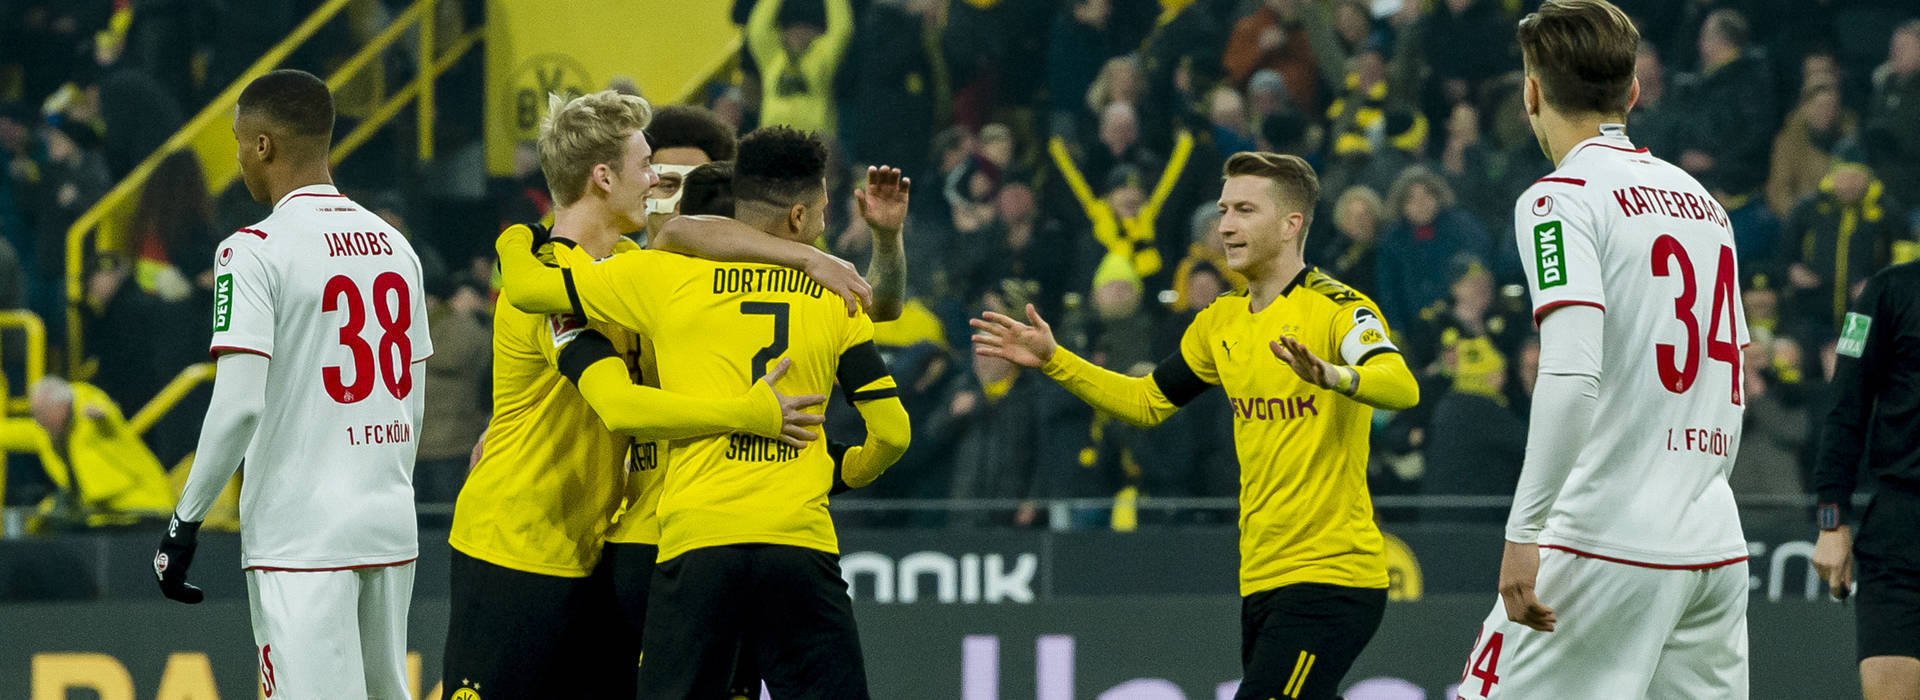 BVB unbeaten at home to Cologne for almost 30 years